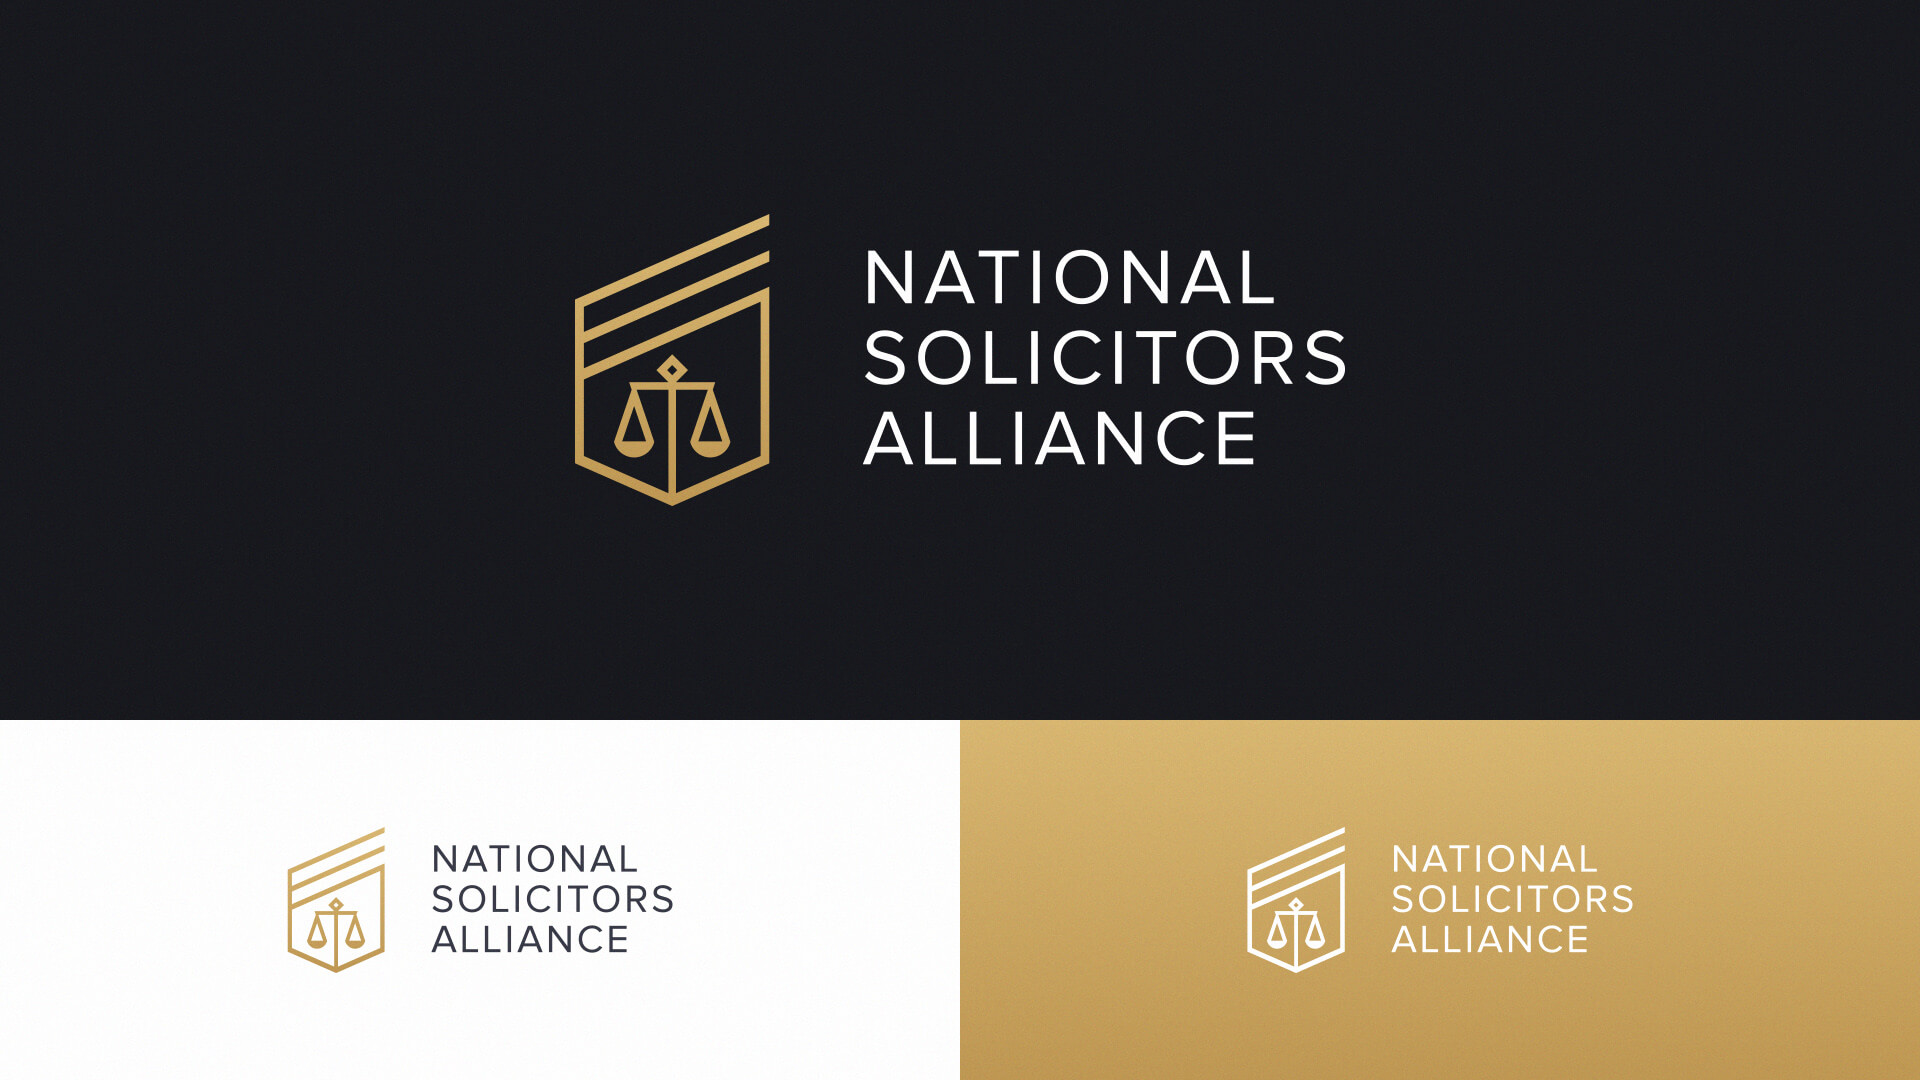 National Solicitors Alliance logo